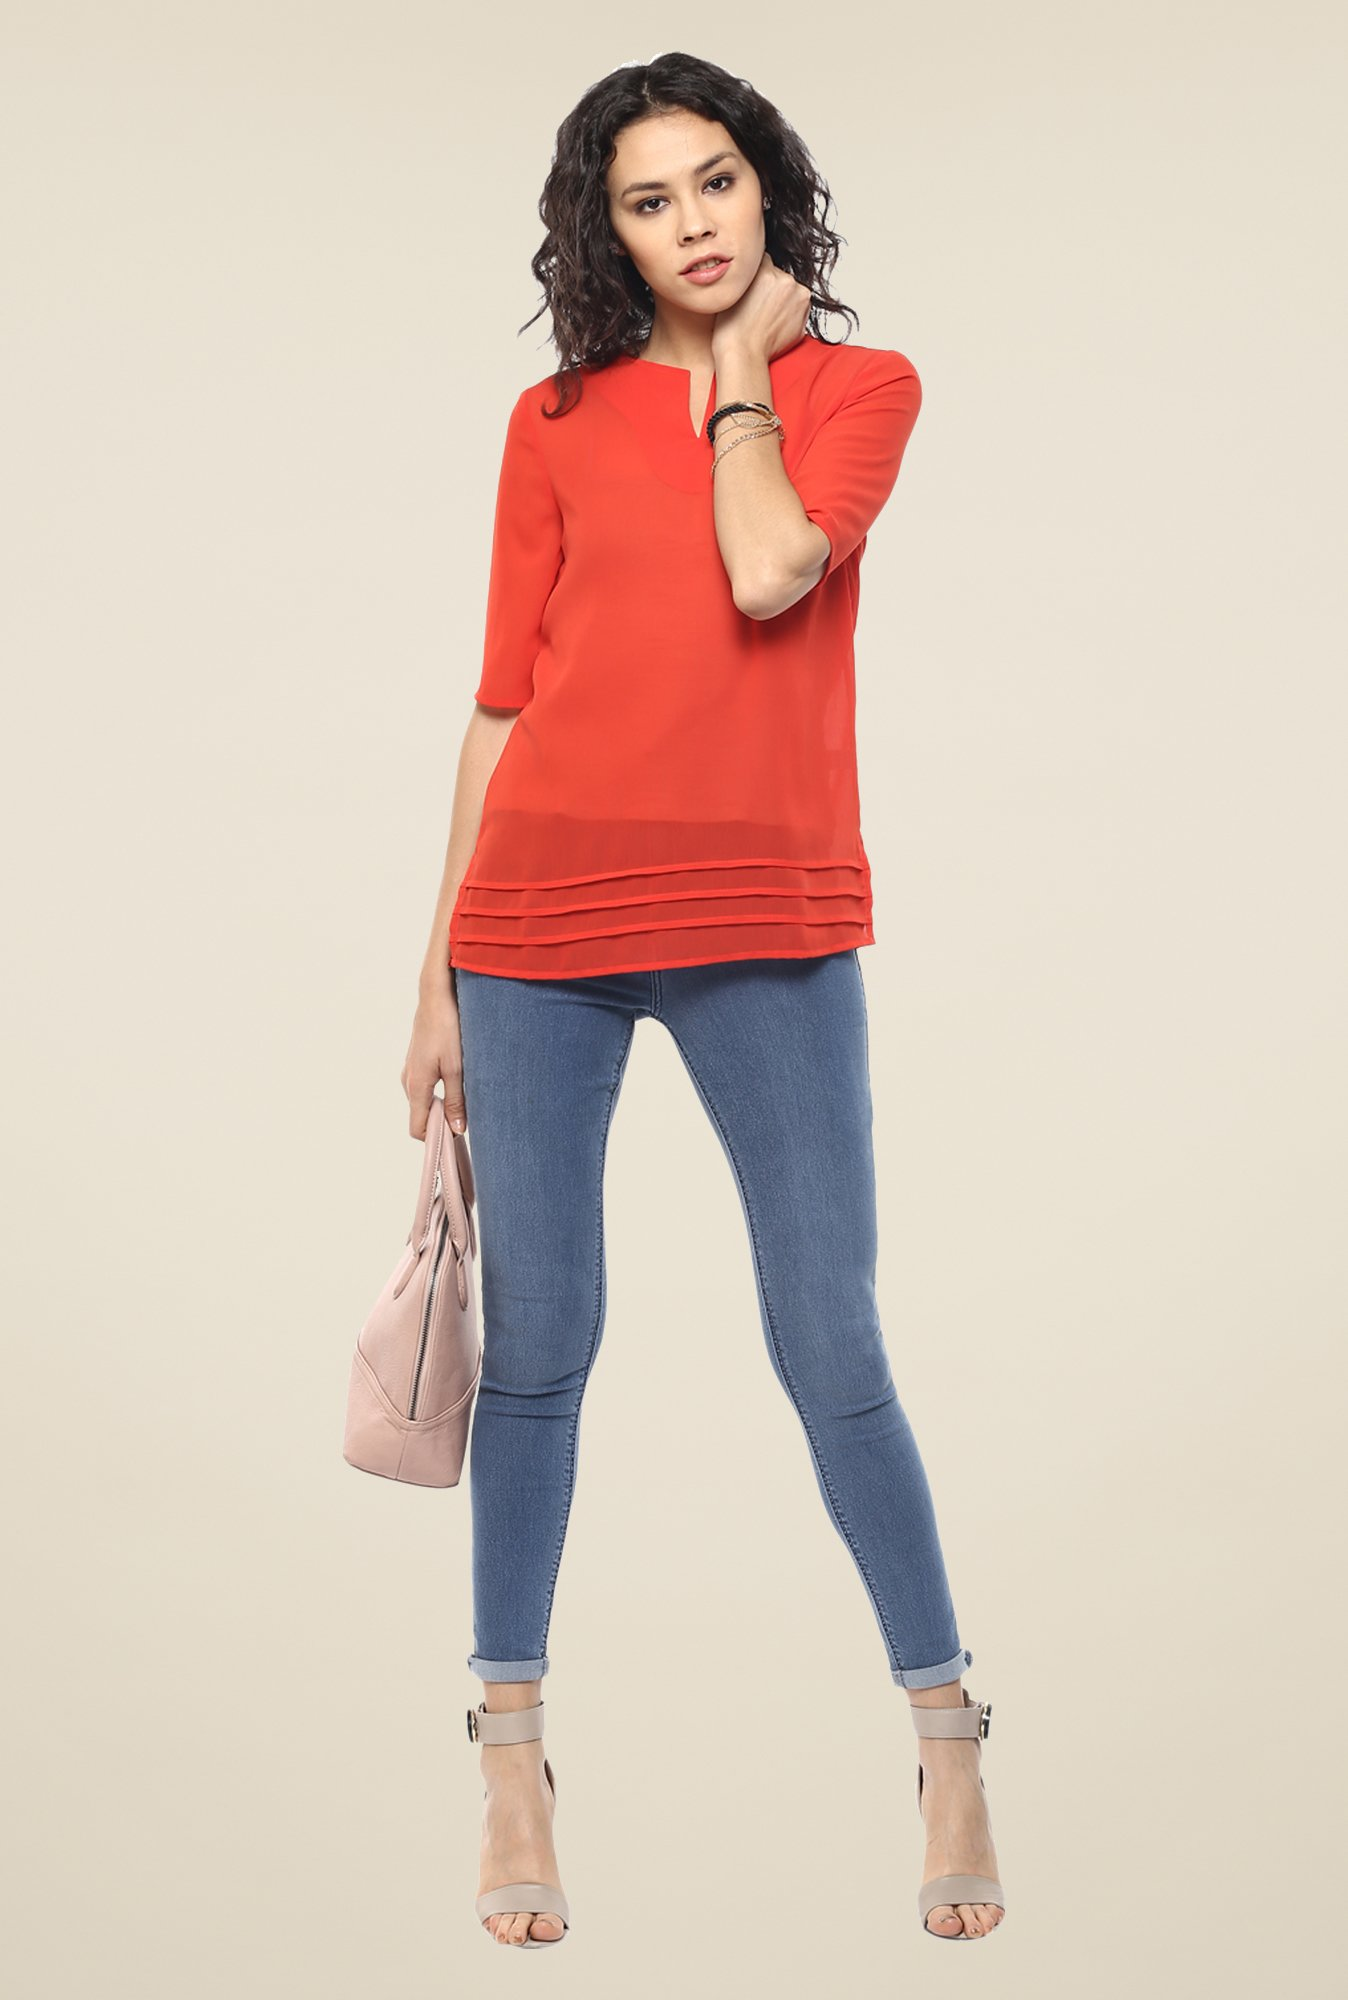 Femella Orange Notched Neck Top